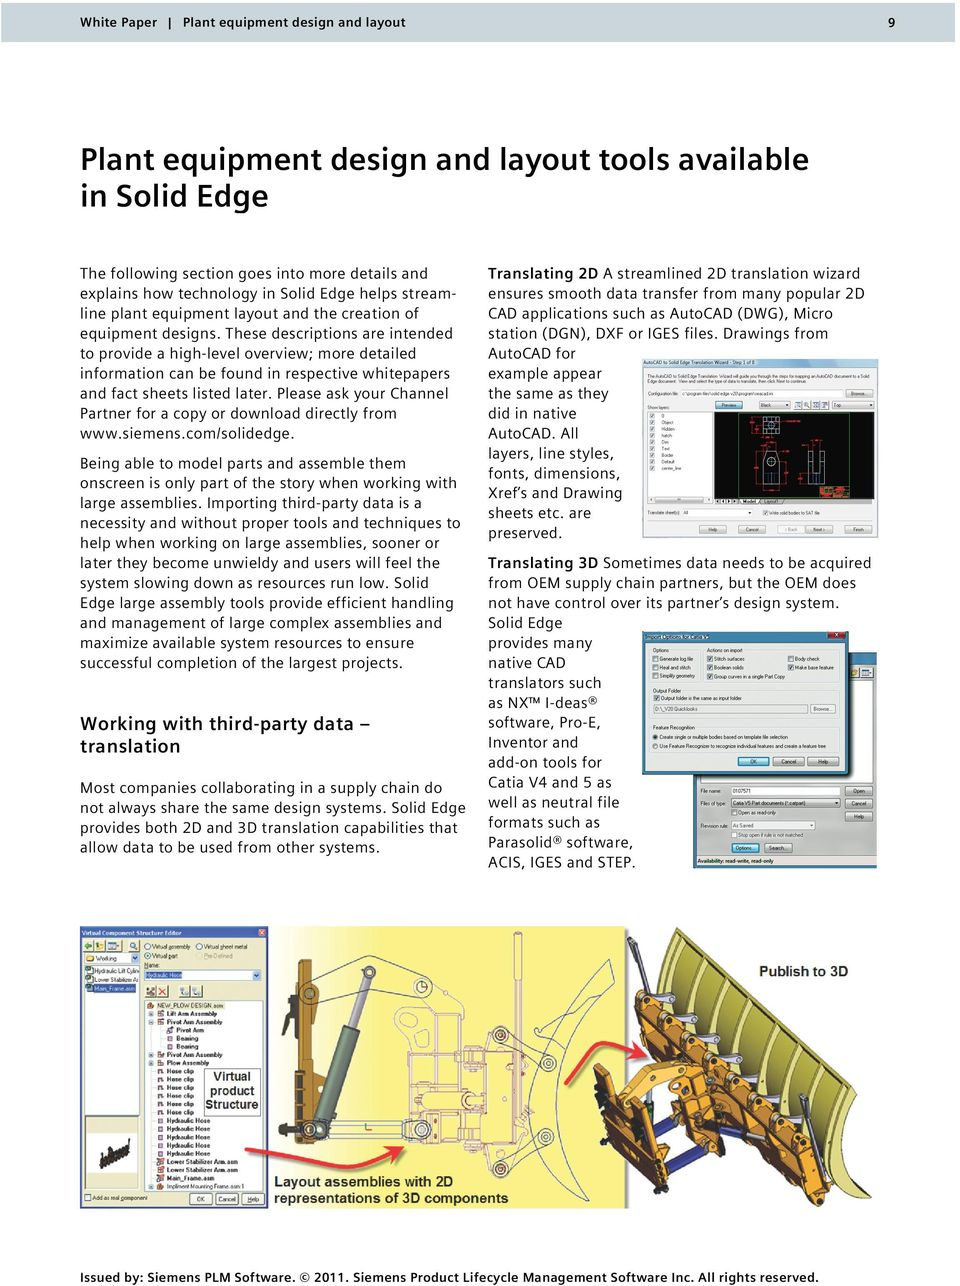 Please ask your Channel Partner for a copy or download directly from www.siemens.com/solidedge.